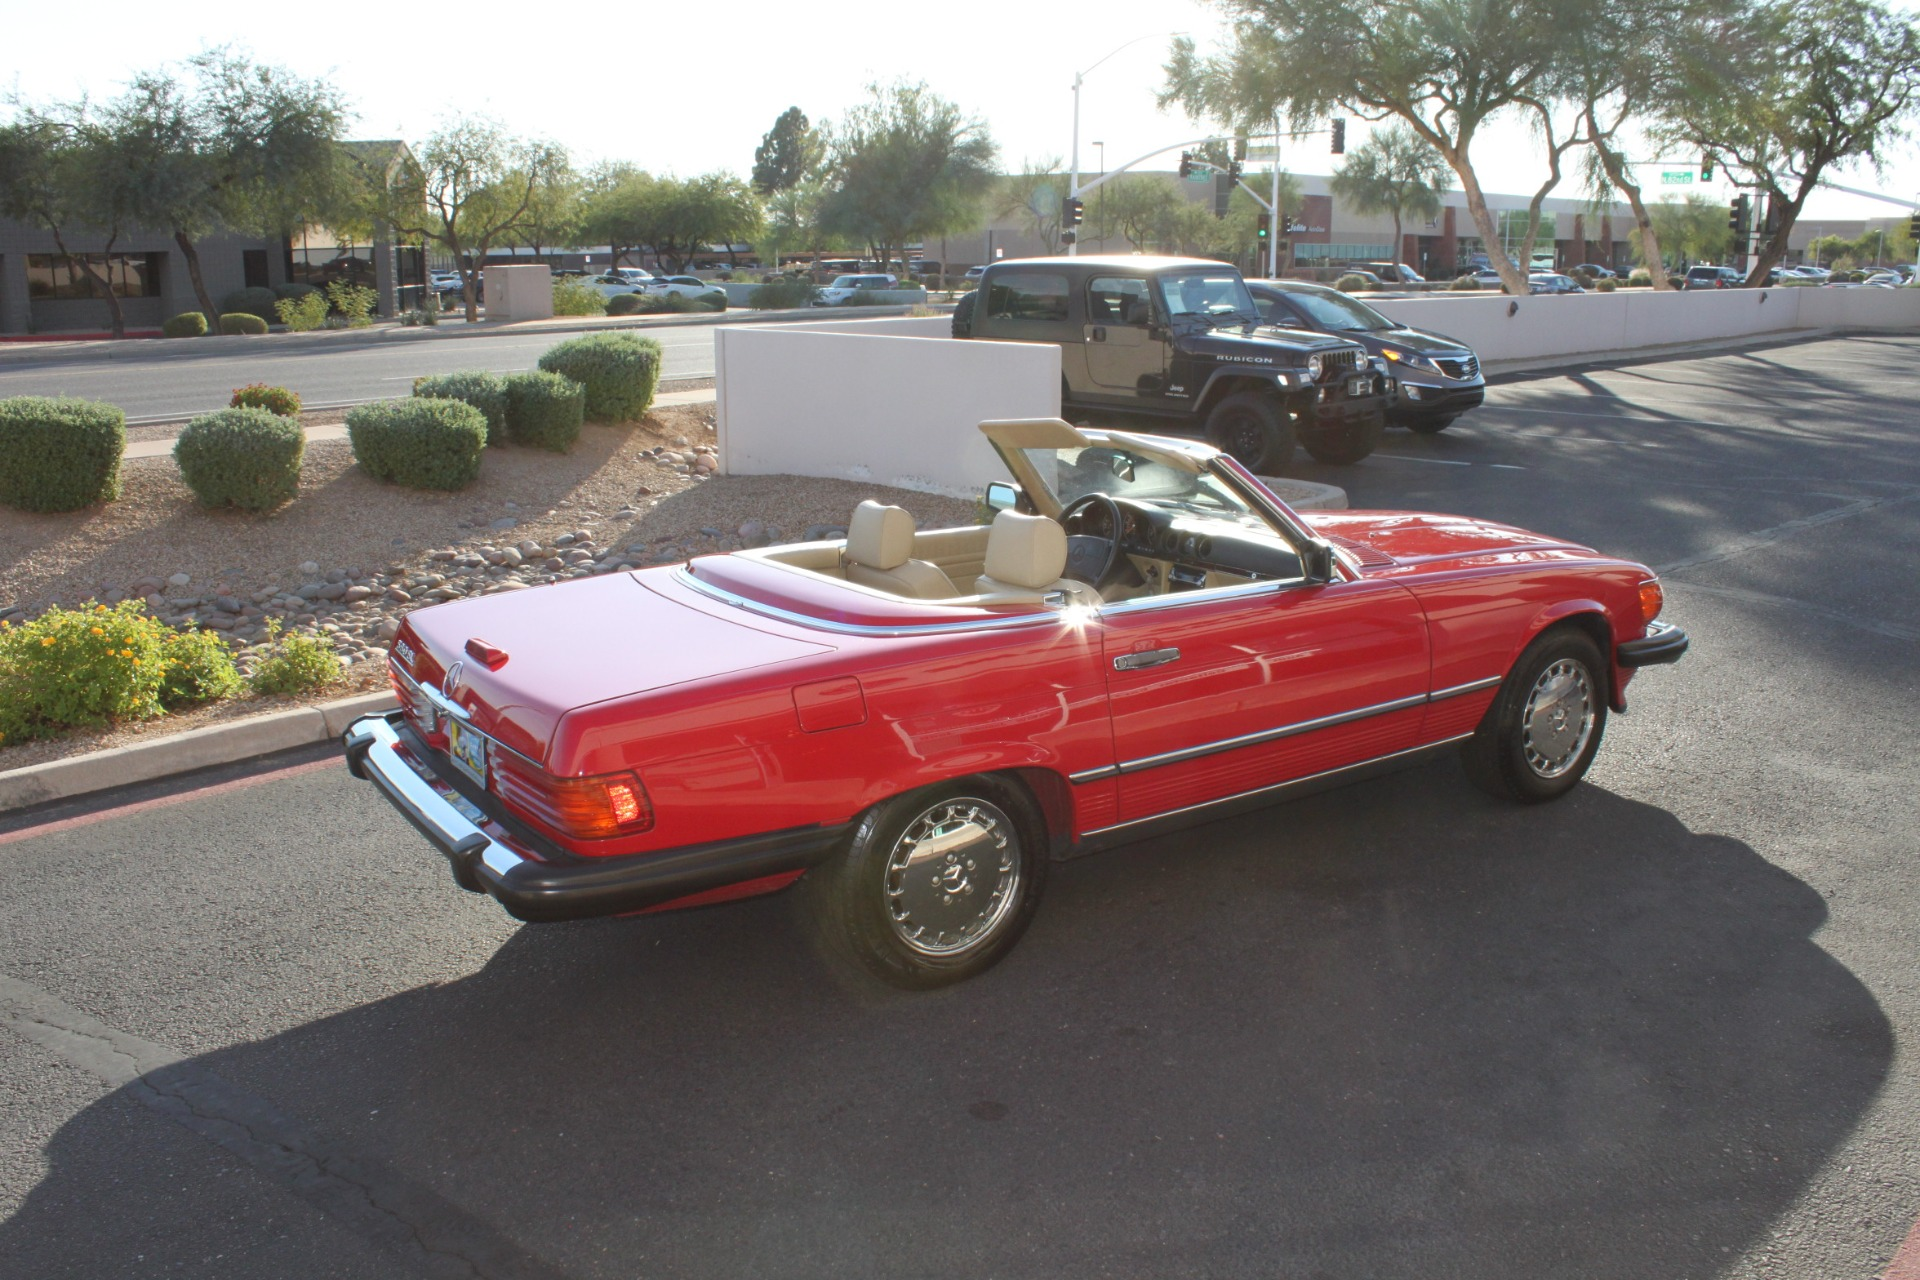 Used-1989-Mercedes-Benz-560-Series-560SL-Chalenger